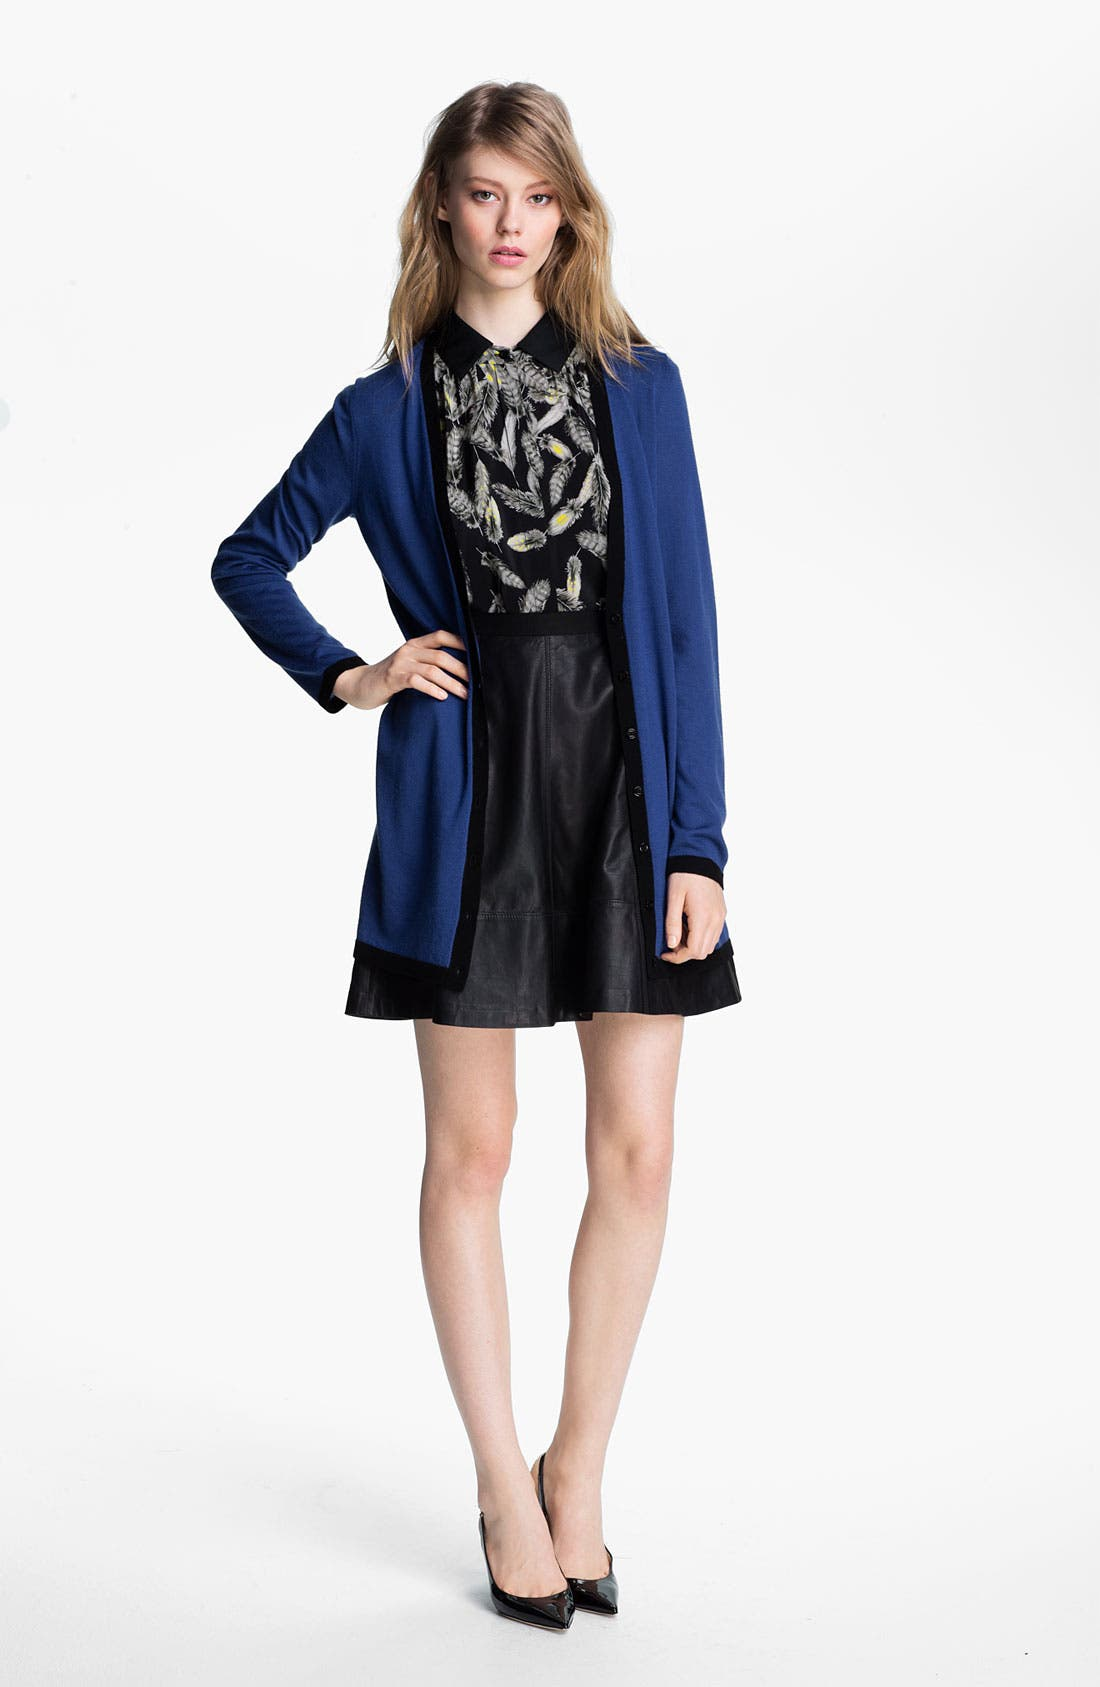 Main Image - Miss Wu Cardigan, Blouse & Skirt